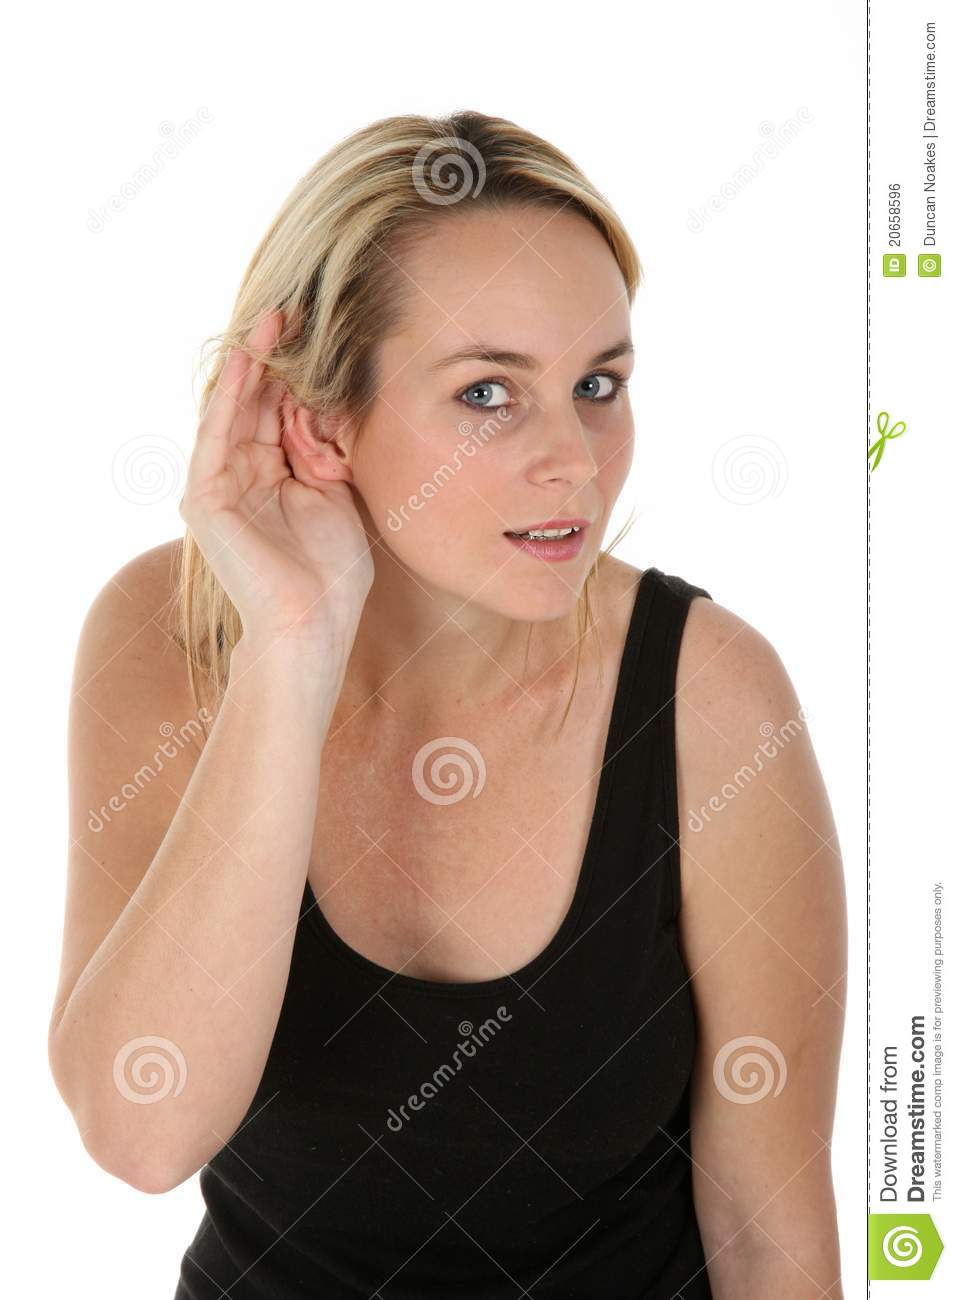 Dating A Hard Of Hearing Girl